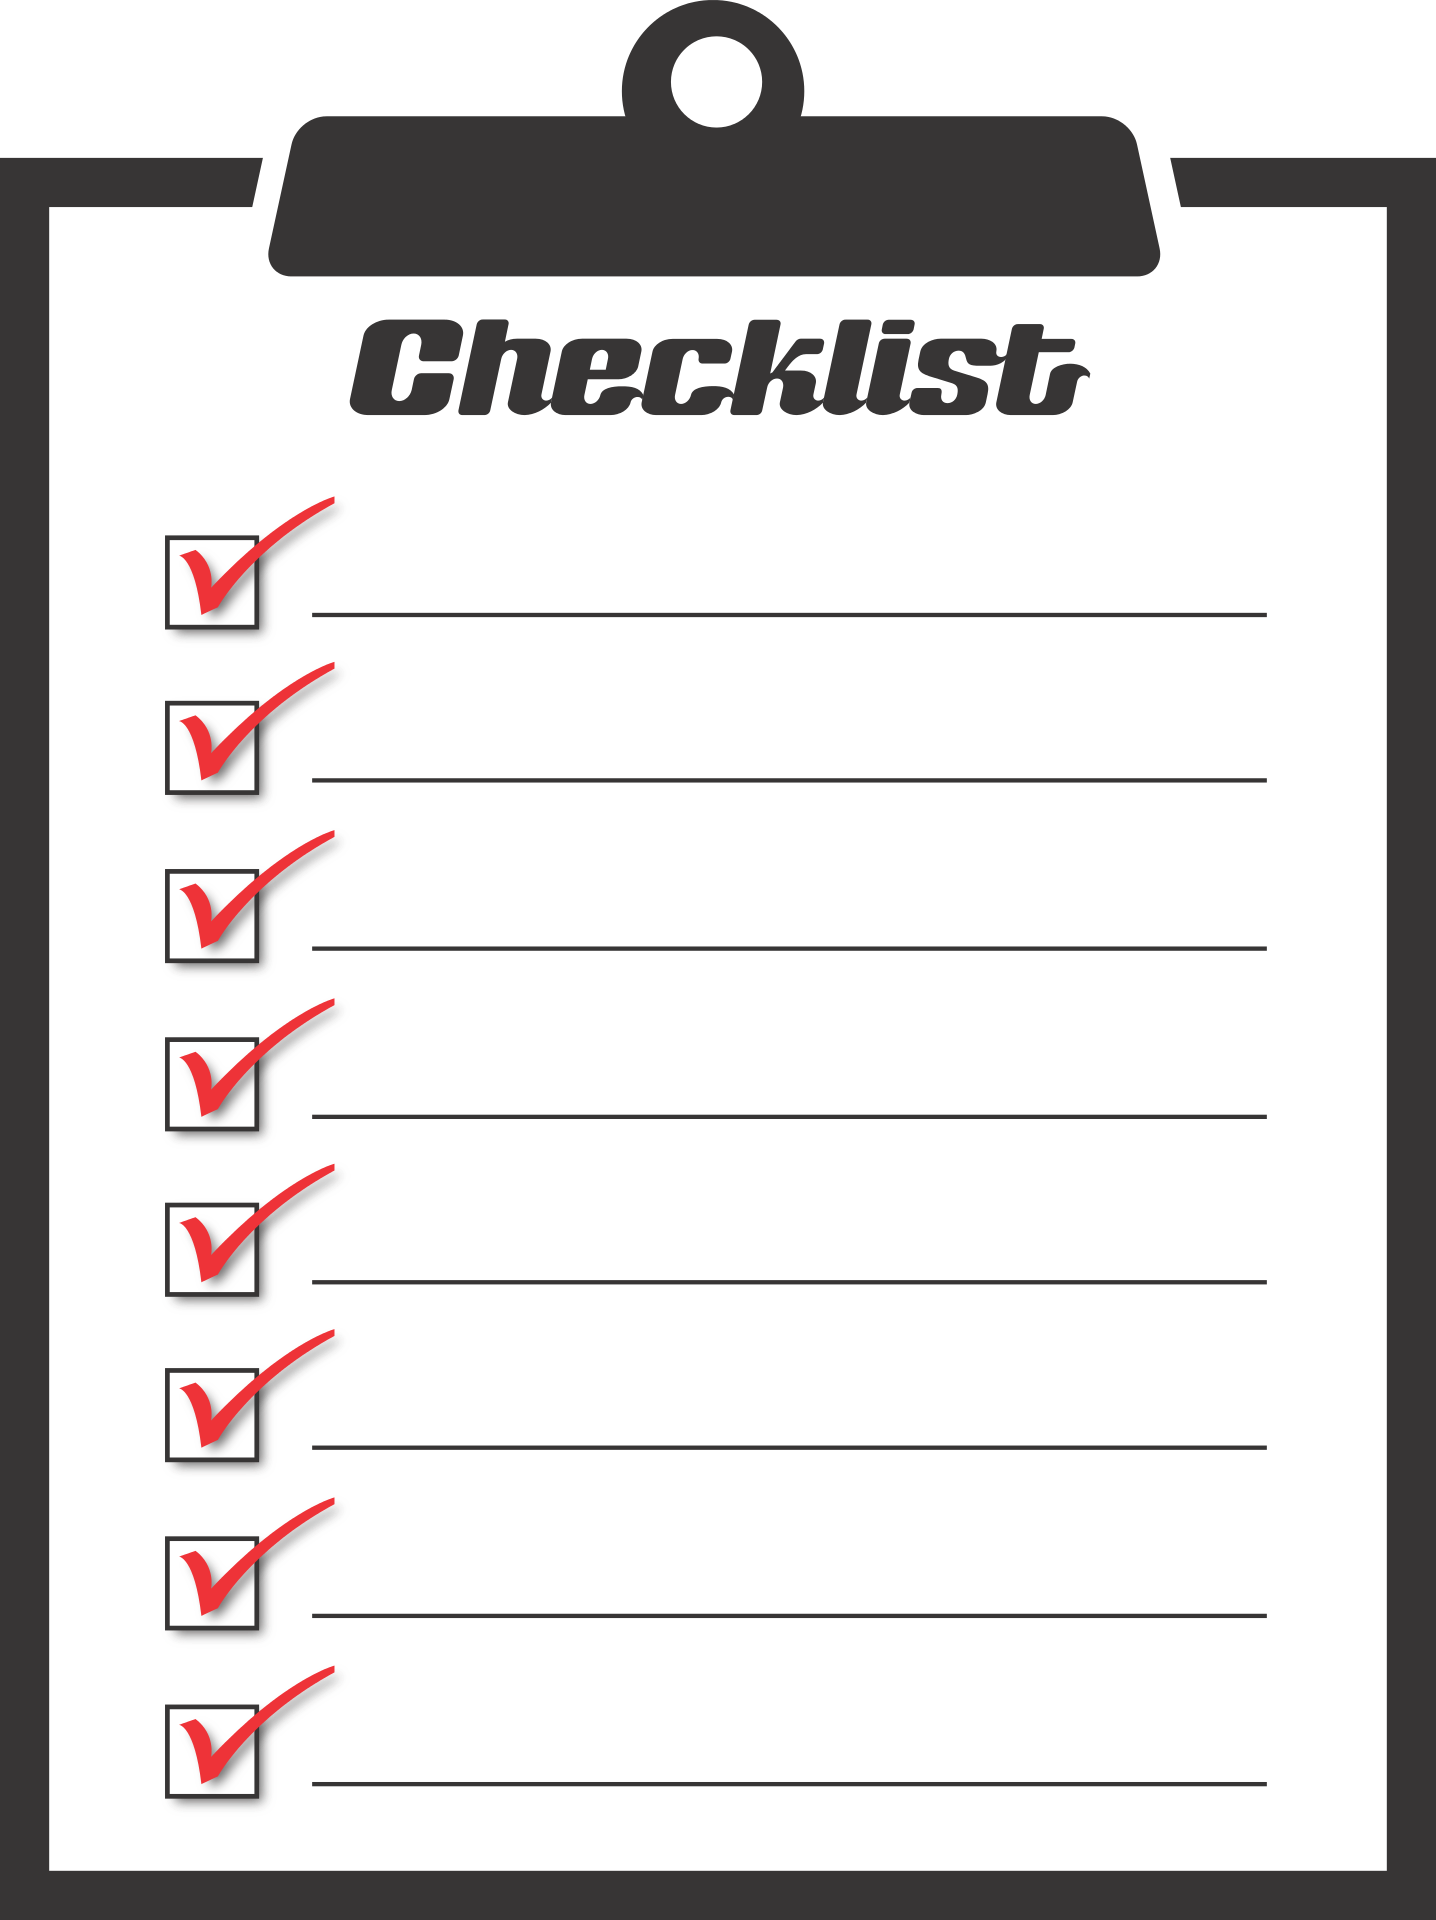 checklist-1316848.png